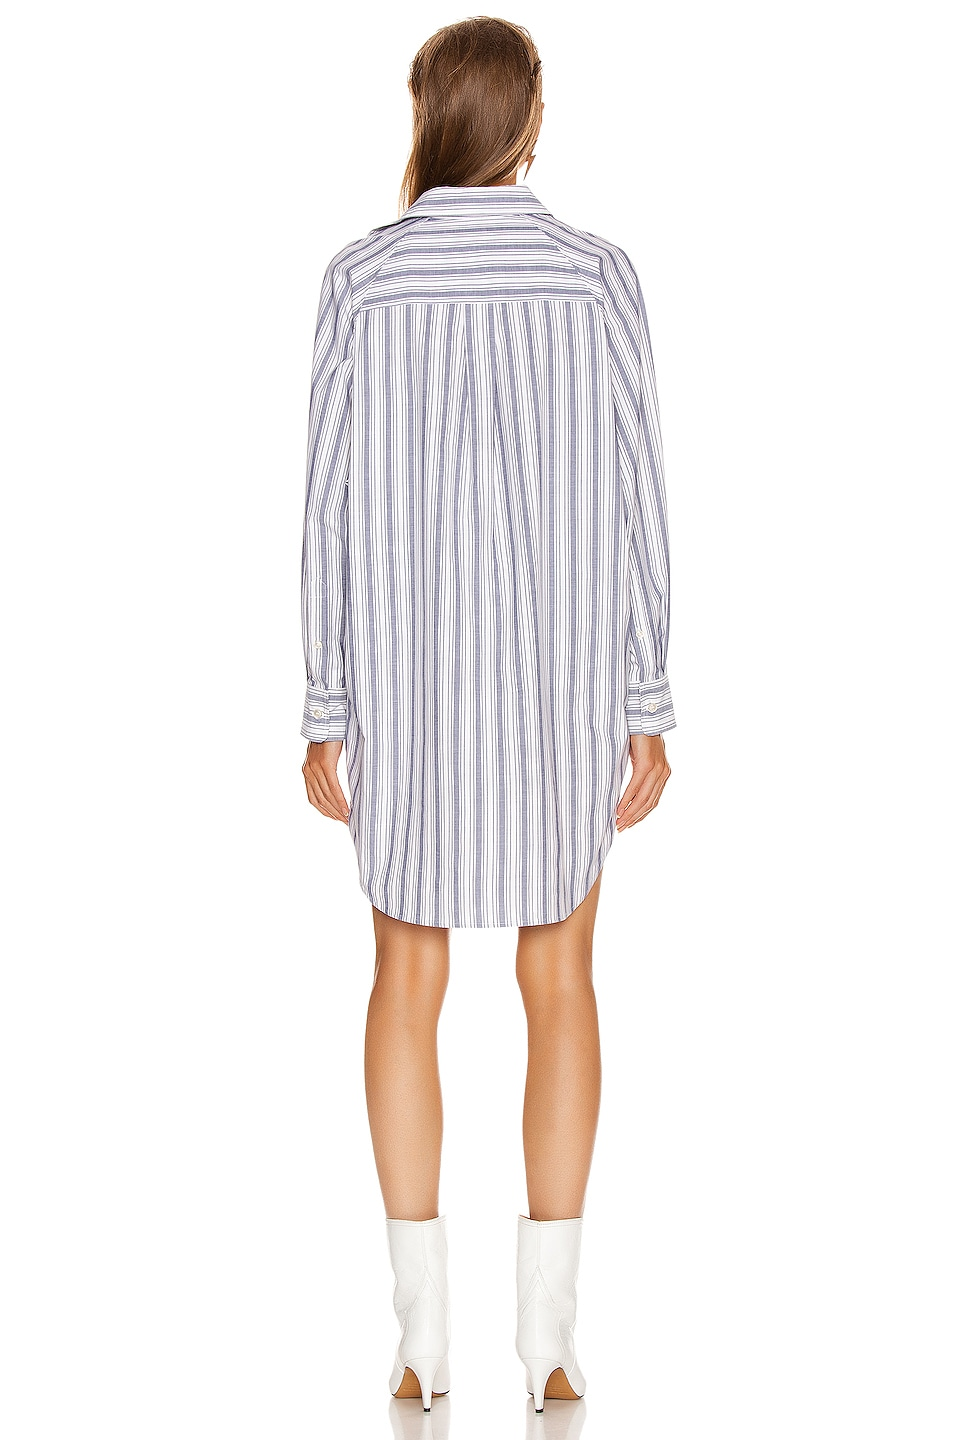 Image 3 of Isabel Marant Etoile Sanders Dress in Blue